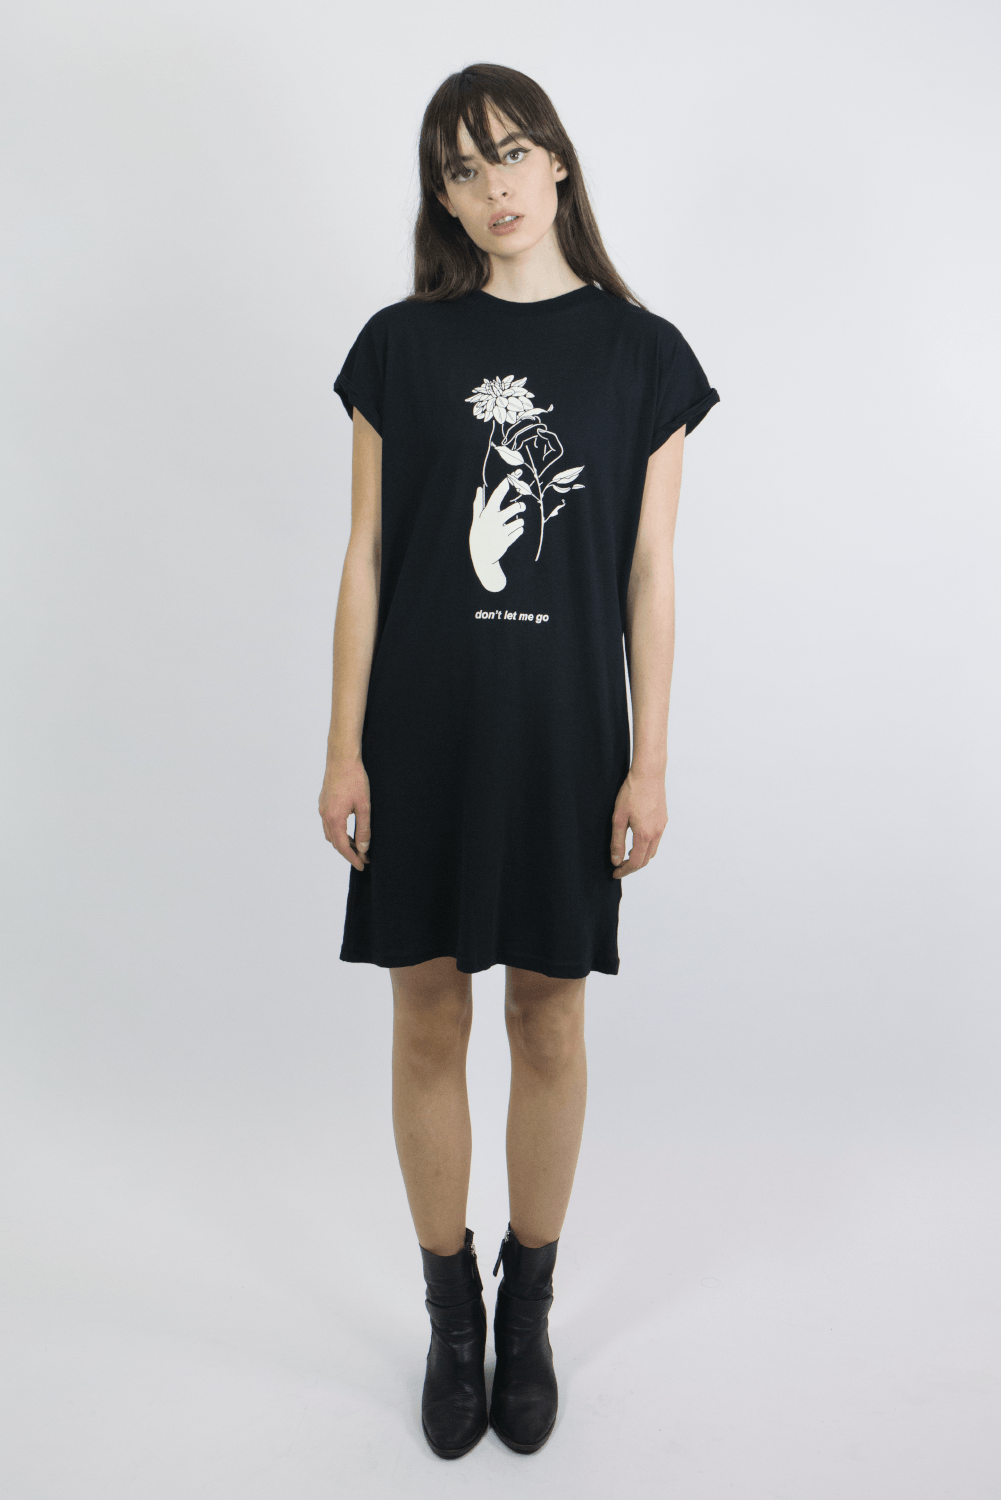 mary wyatt london black tshirt dress with flower illustration by death&milk